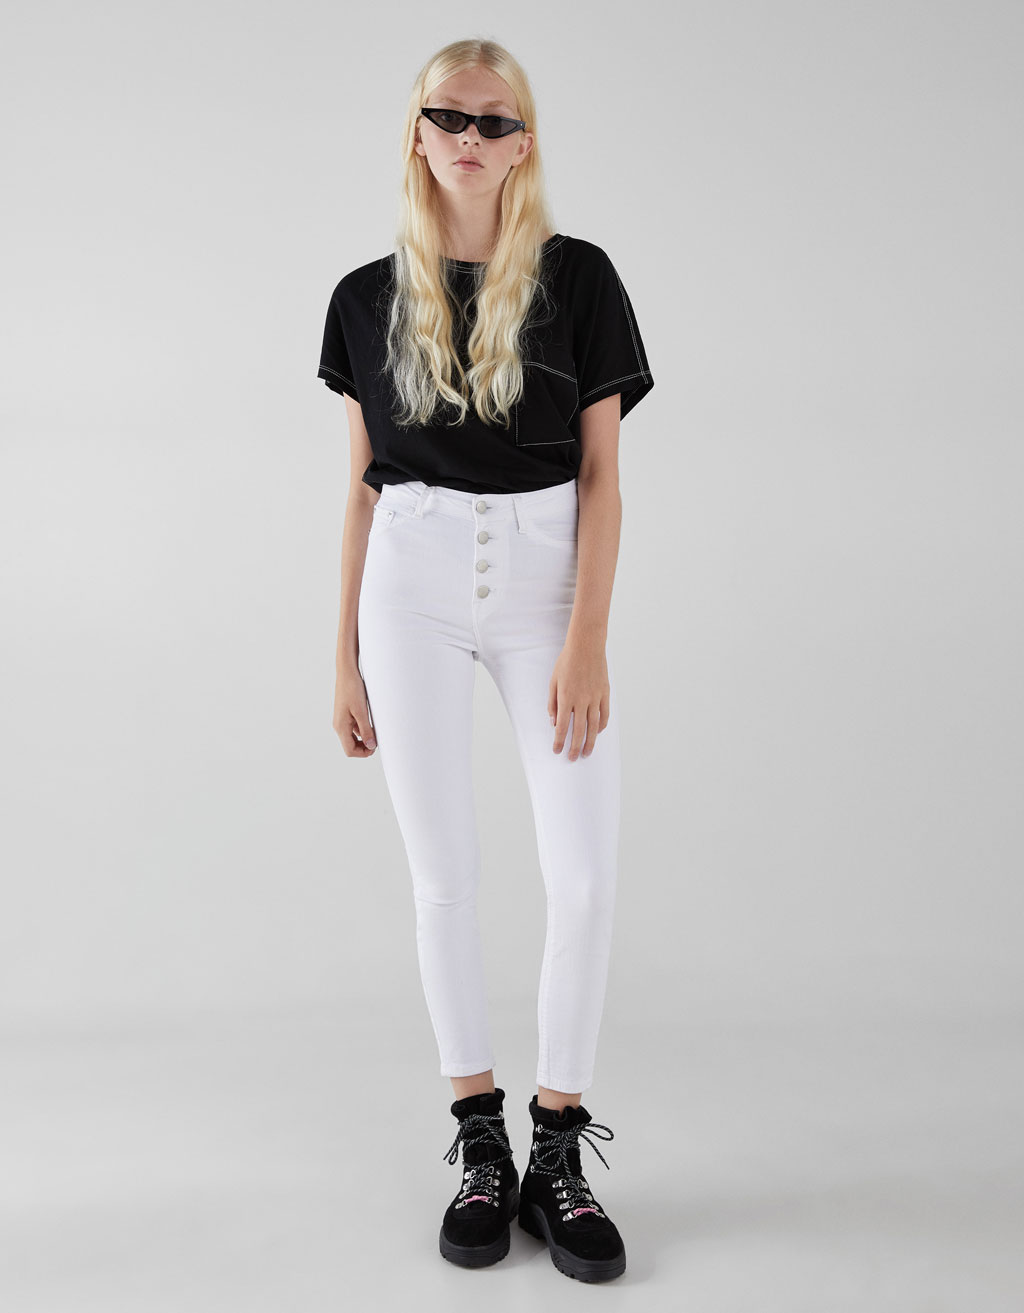 Join Life mid waist, button-up trousers